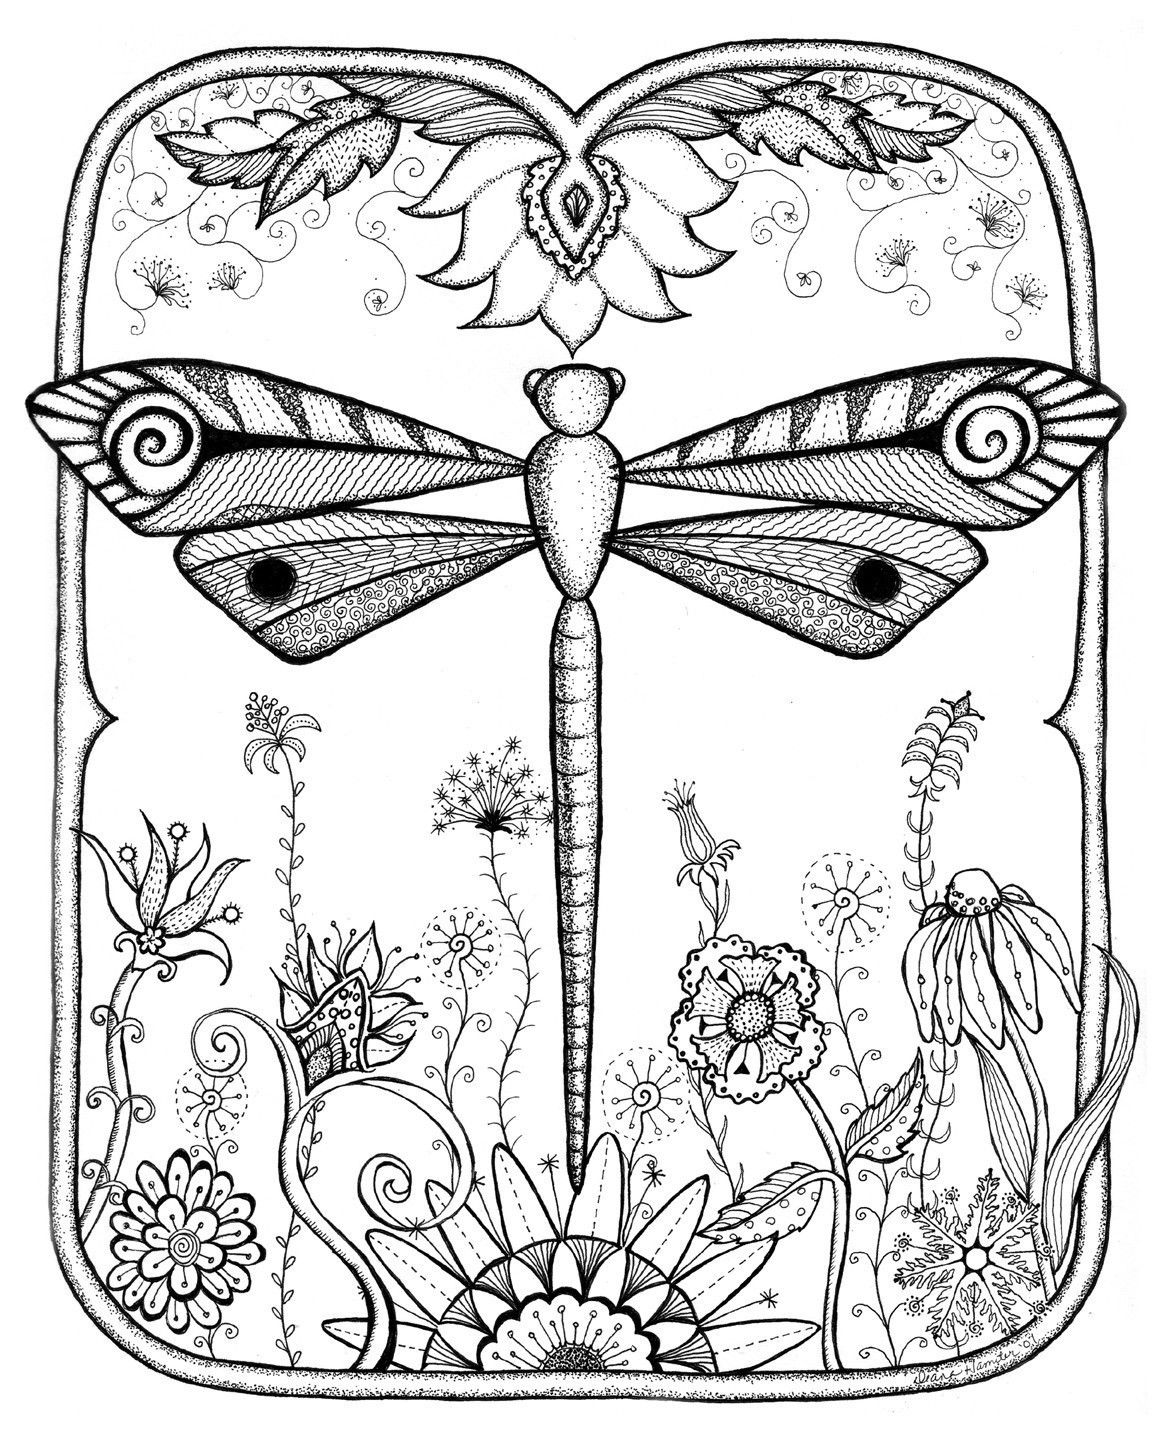 Dragonfly Garden Abstract Doodle Zentangle ZenDoodle ...